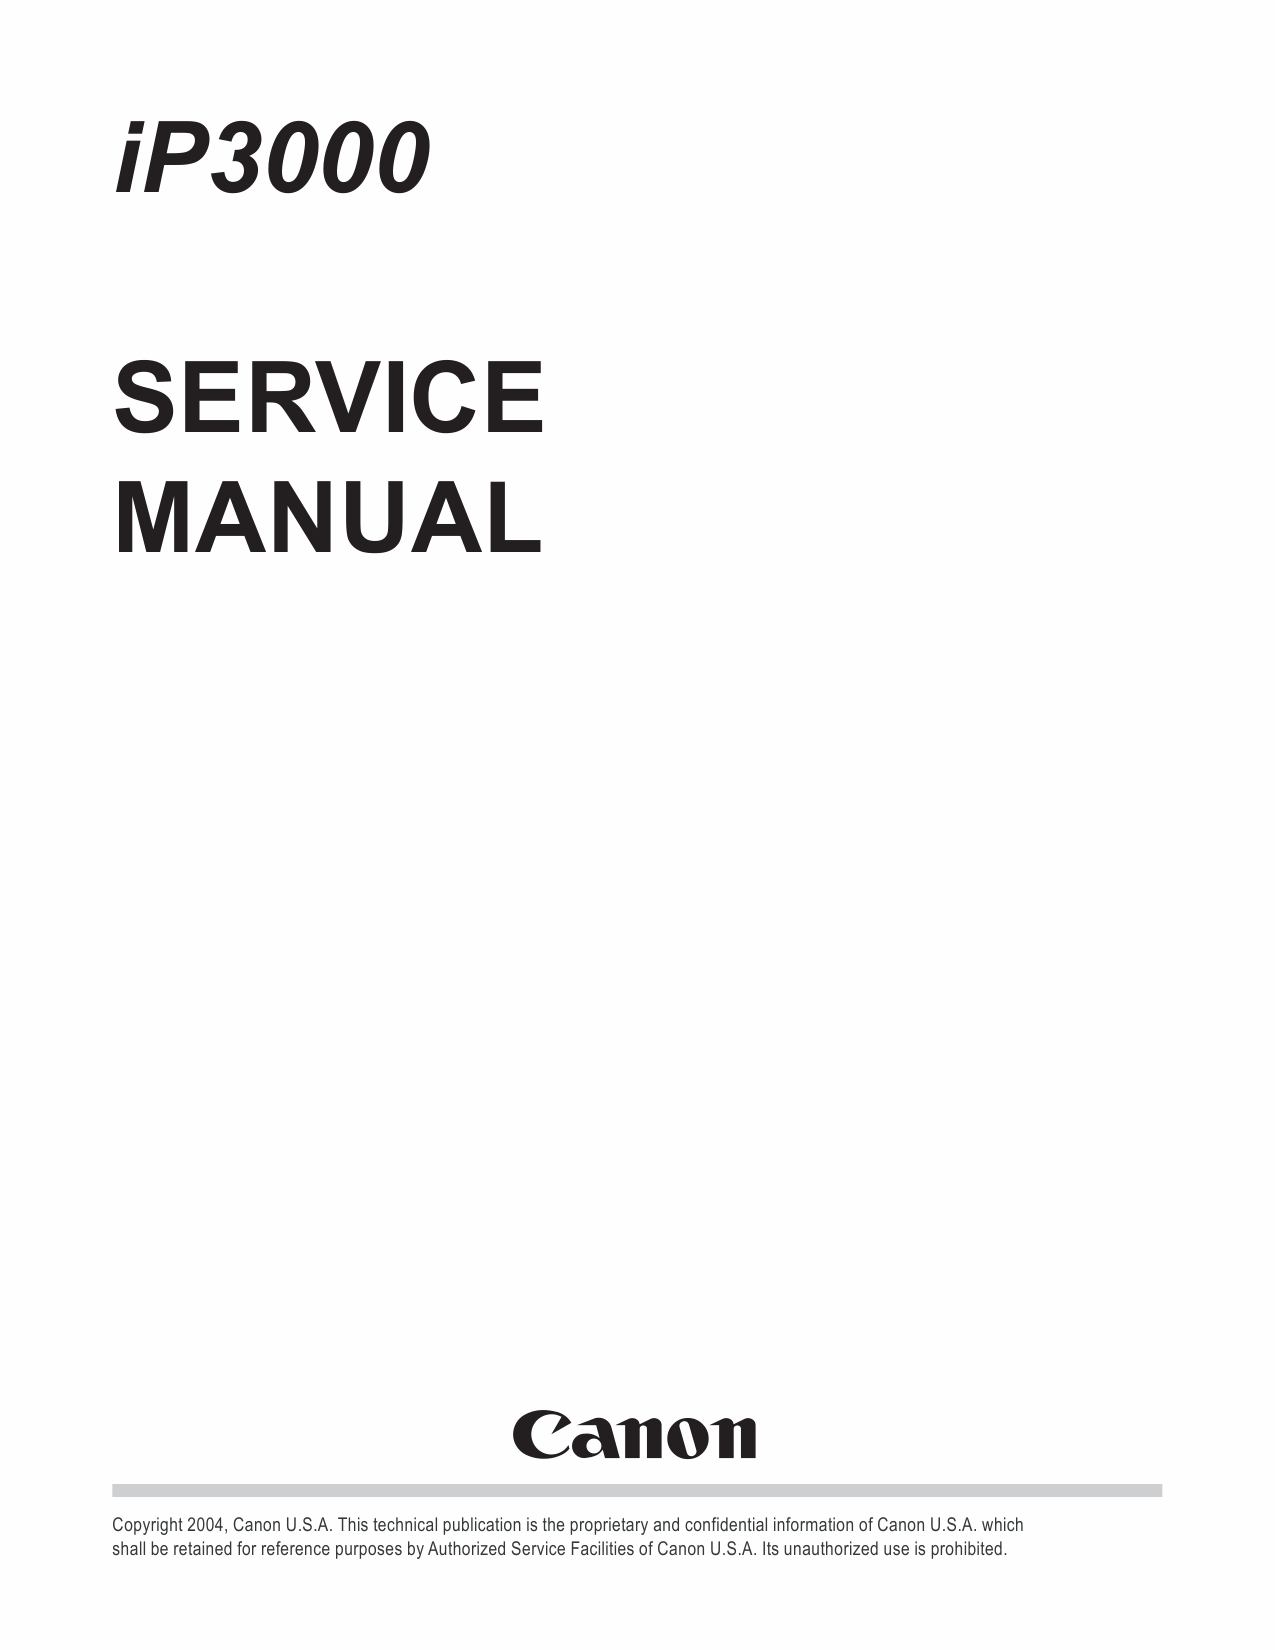 Canon PIXMA iP3000 Service Manual